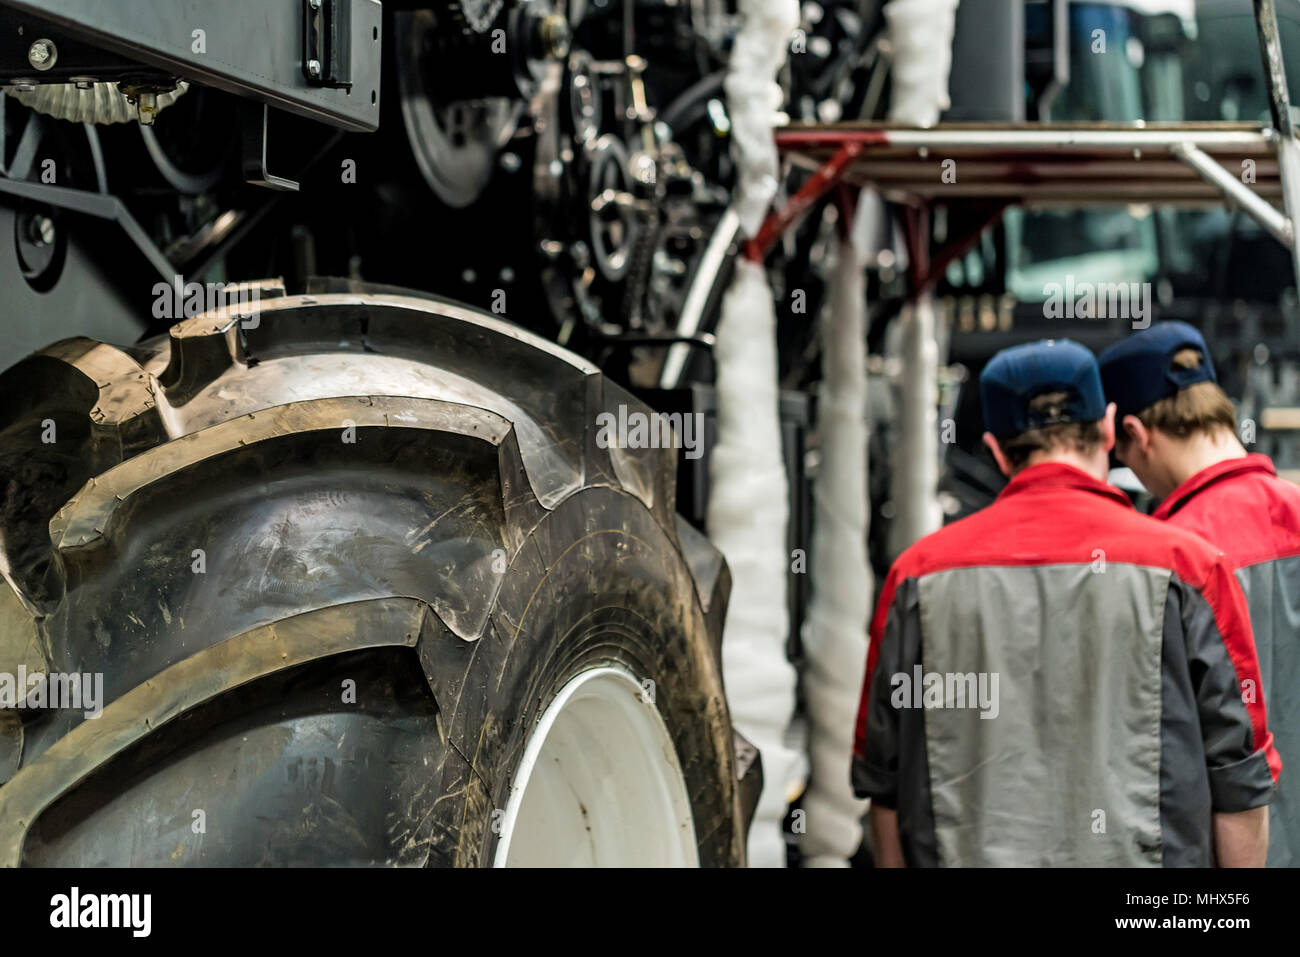 Worker assembles tractor or combine harvester at large machinery plant. Industrial concept of heavy machinery manufacturing - Stock Image